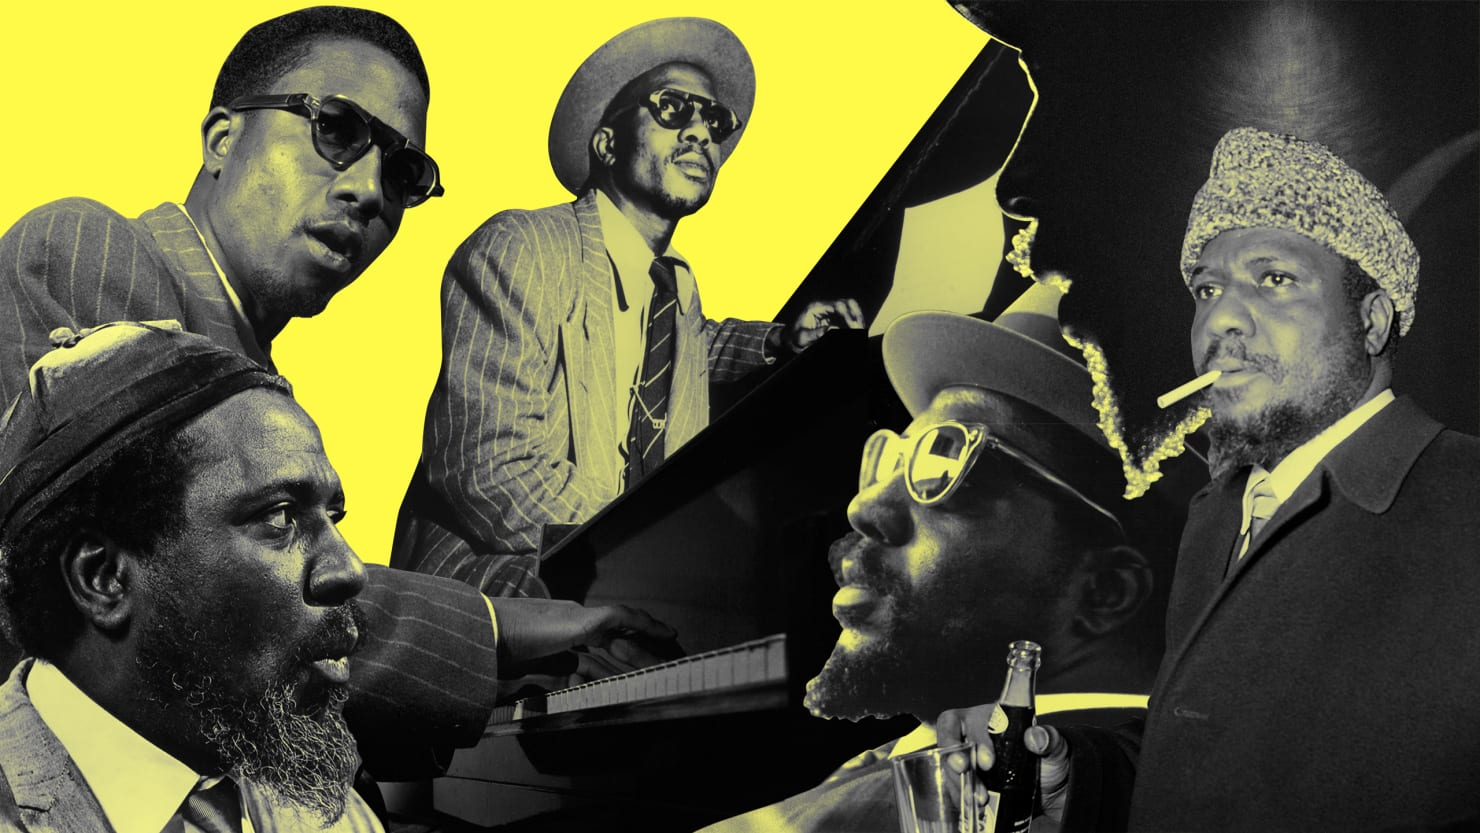 Thelonious Monk Will Change Your Life, Even From the Grave